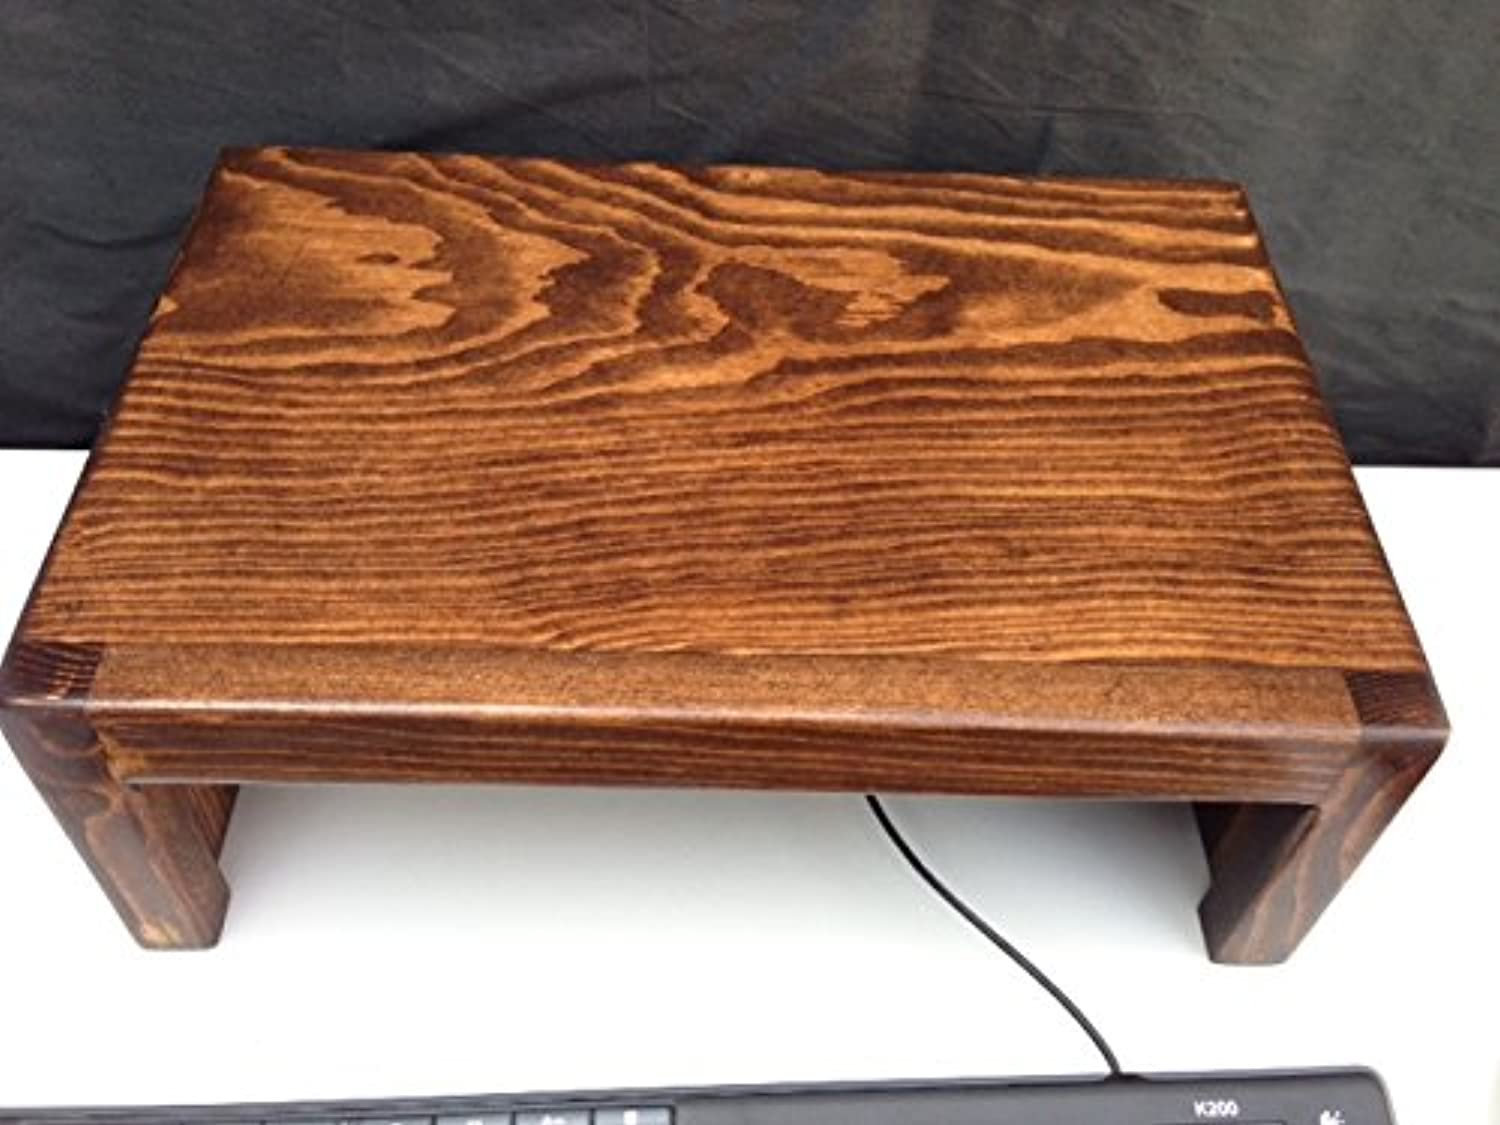 Ideas to Home Computer Monitor Riser Solid Clean Pine Wood (15  W x 10  D x 5 1 2  H, Coffee)